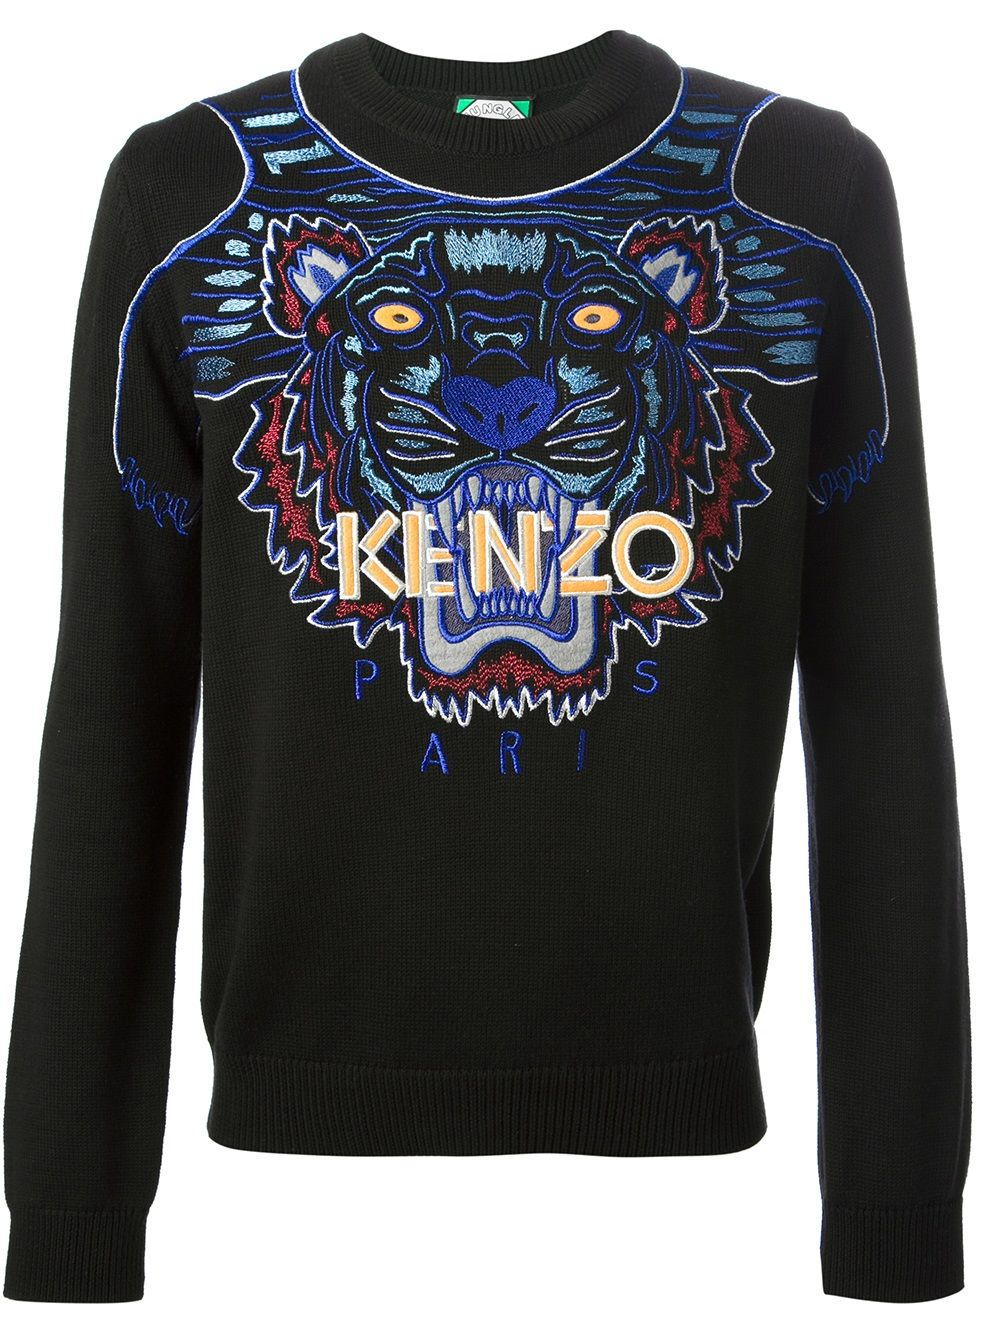 Kenzo Embroidered Tiger Sweater Farfetch Sweaters Kenzo Embroidered [ 1334 x 1000 Pixel ]